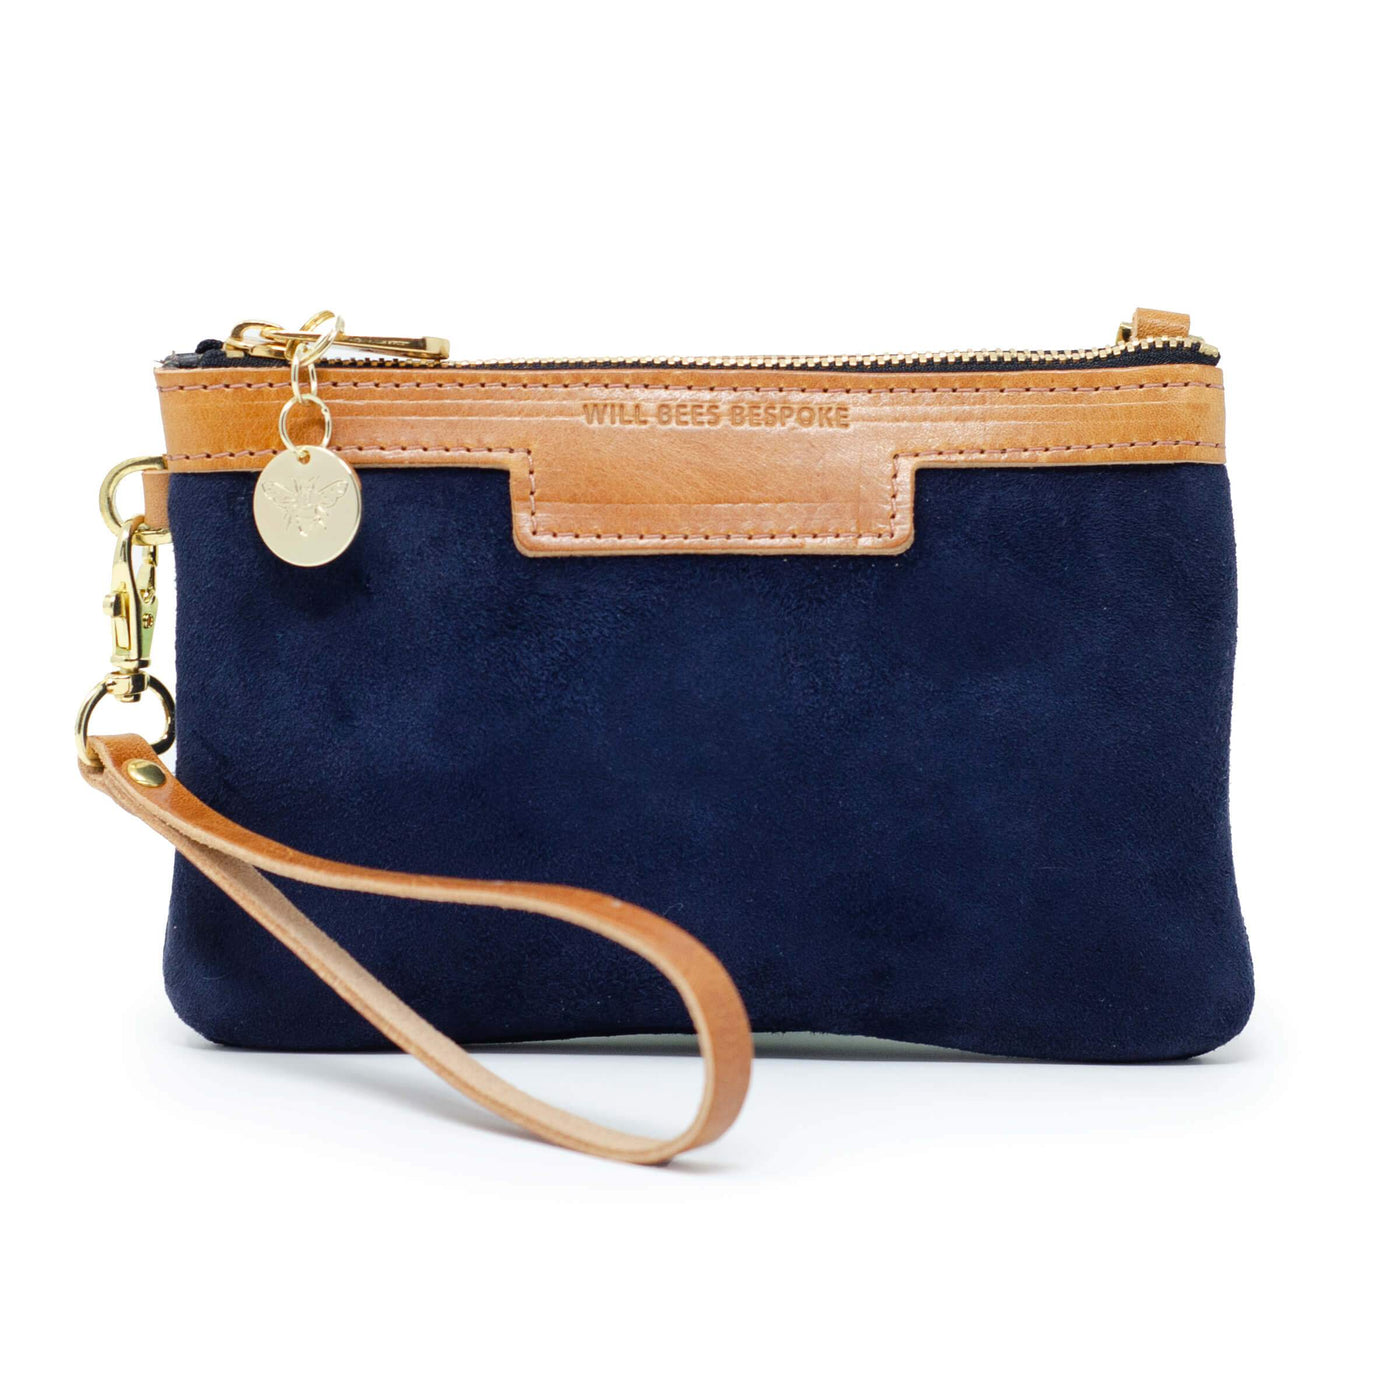 Premium Diana Mini Clutch - Navy Suede